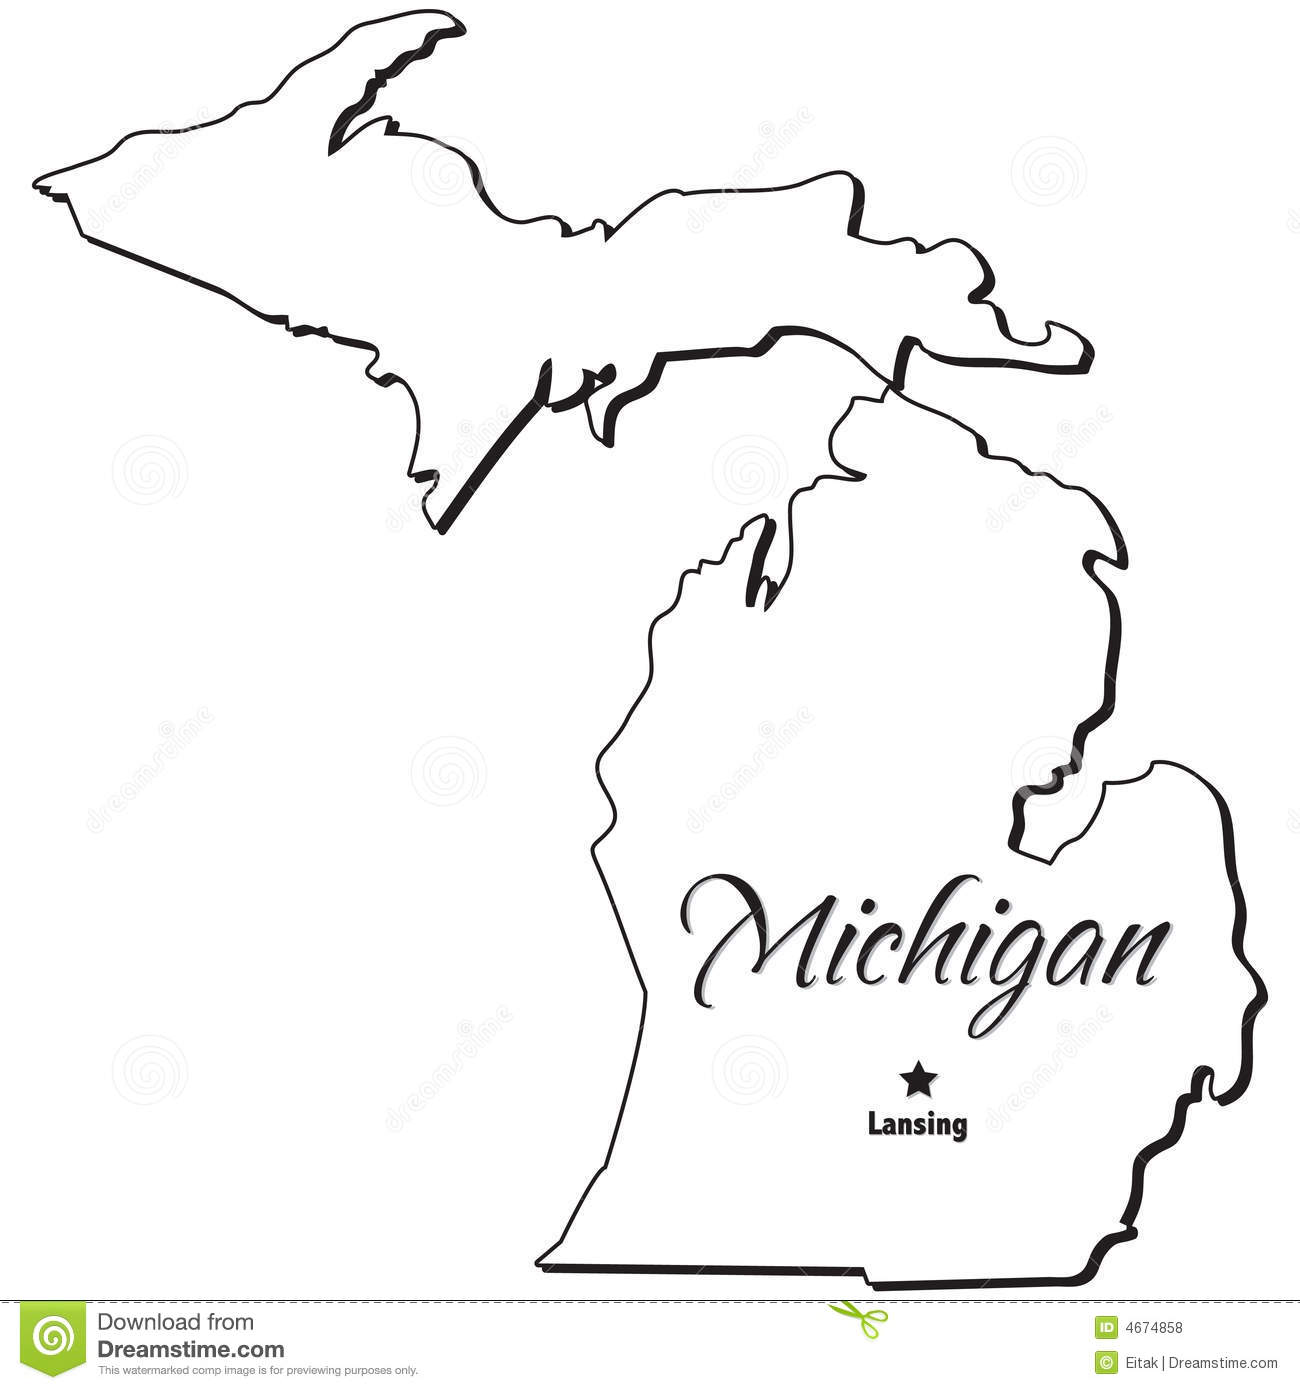 State Of Michigan Outline Illustration 4674858 - Megapixl